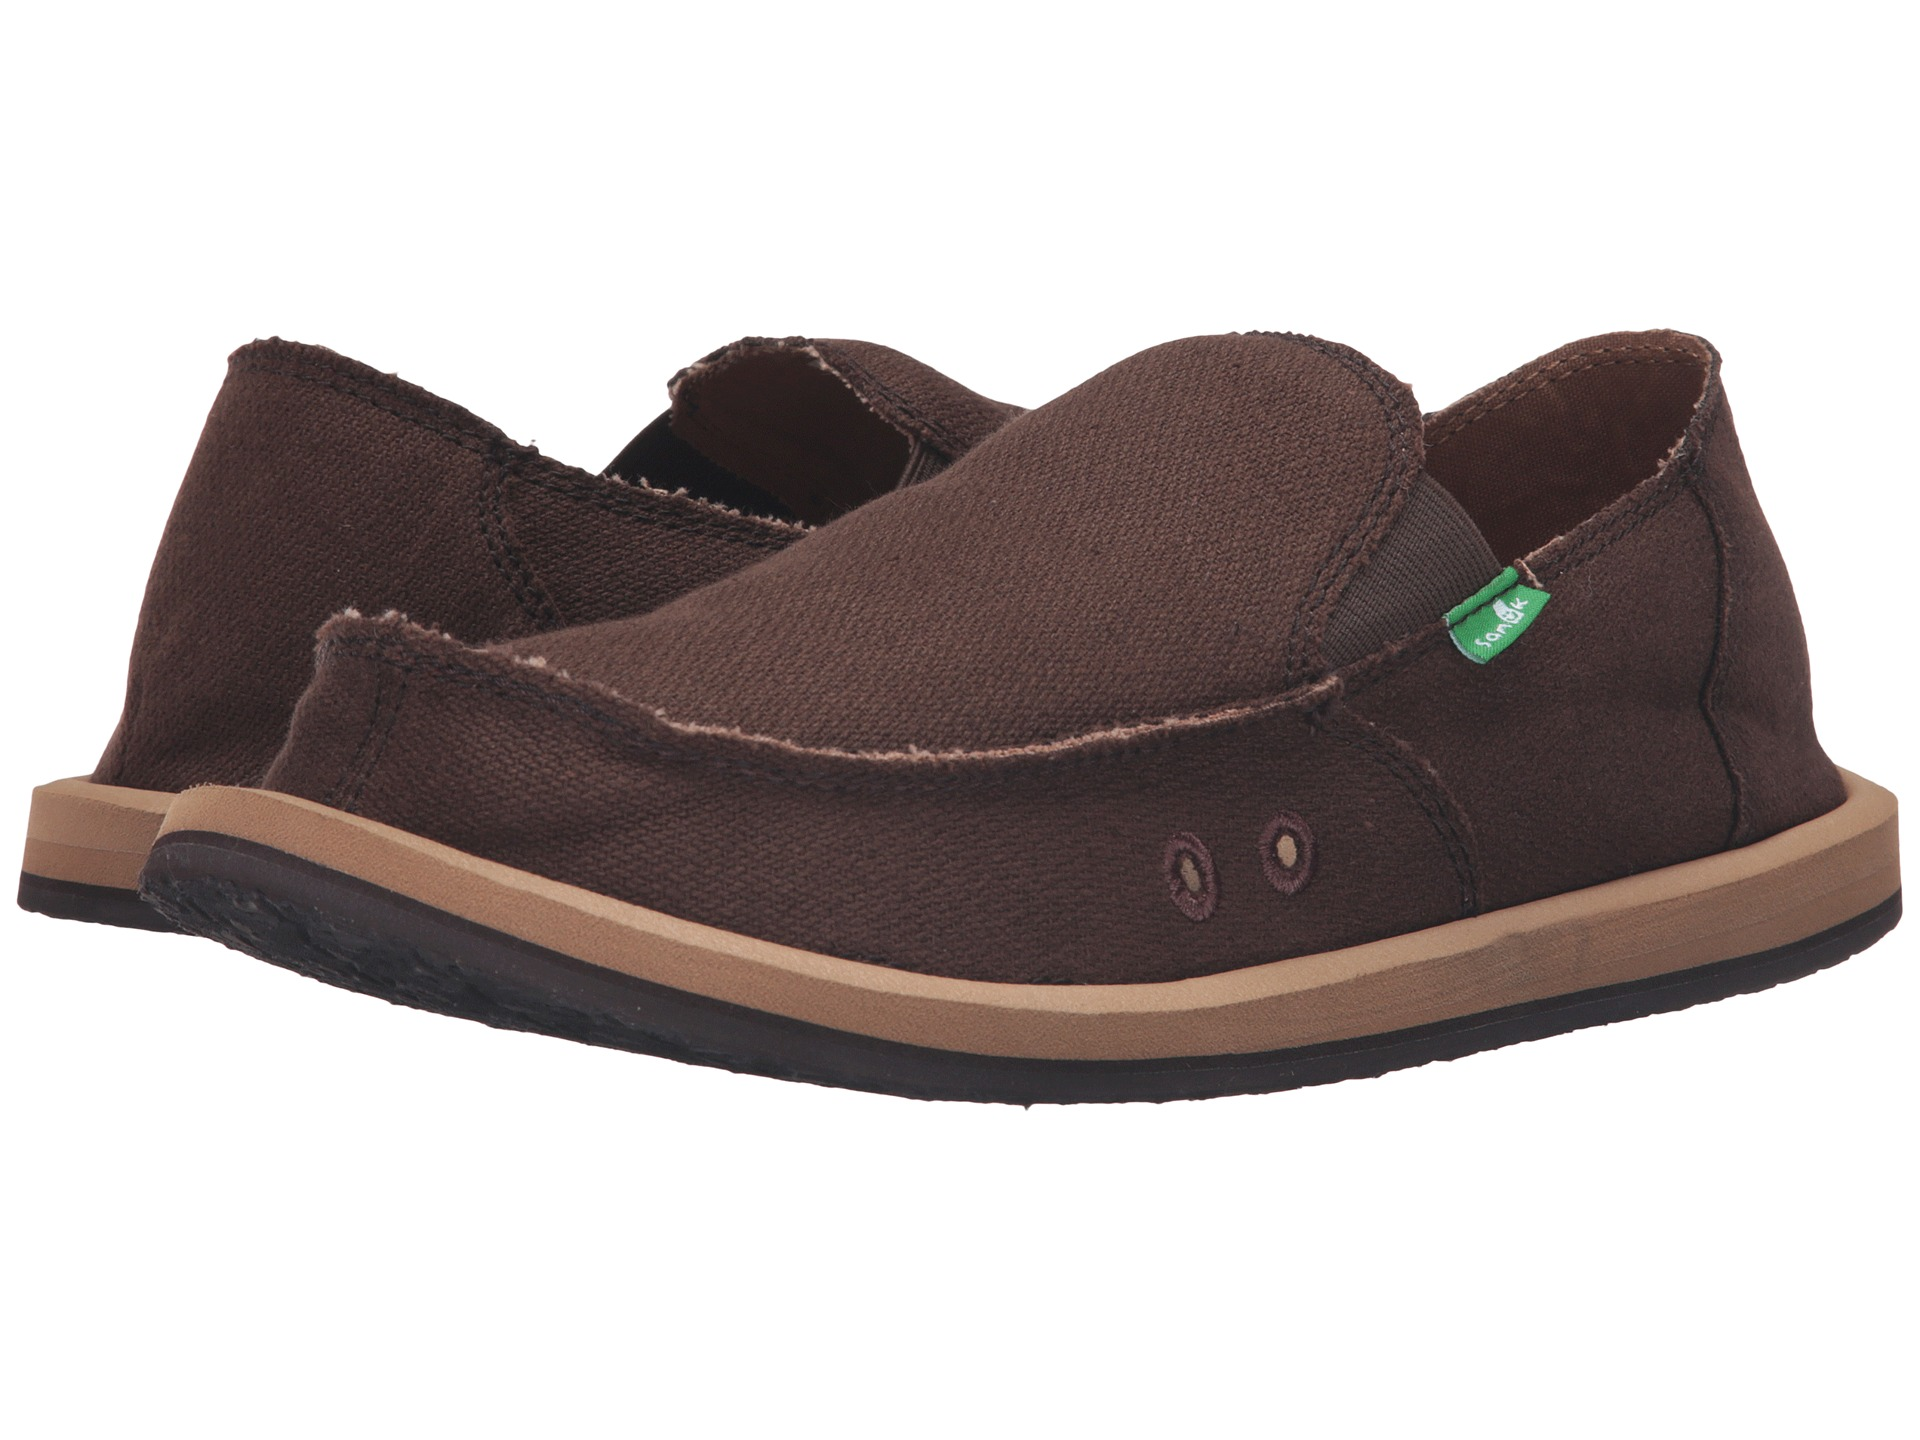 Sanuk Shoes - where comfort meets fashion! These are the best Sanuks for women & men, along with outfit ideas, & links to buy sanuk shoes on sale for cheap.